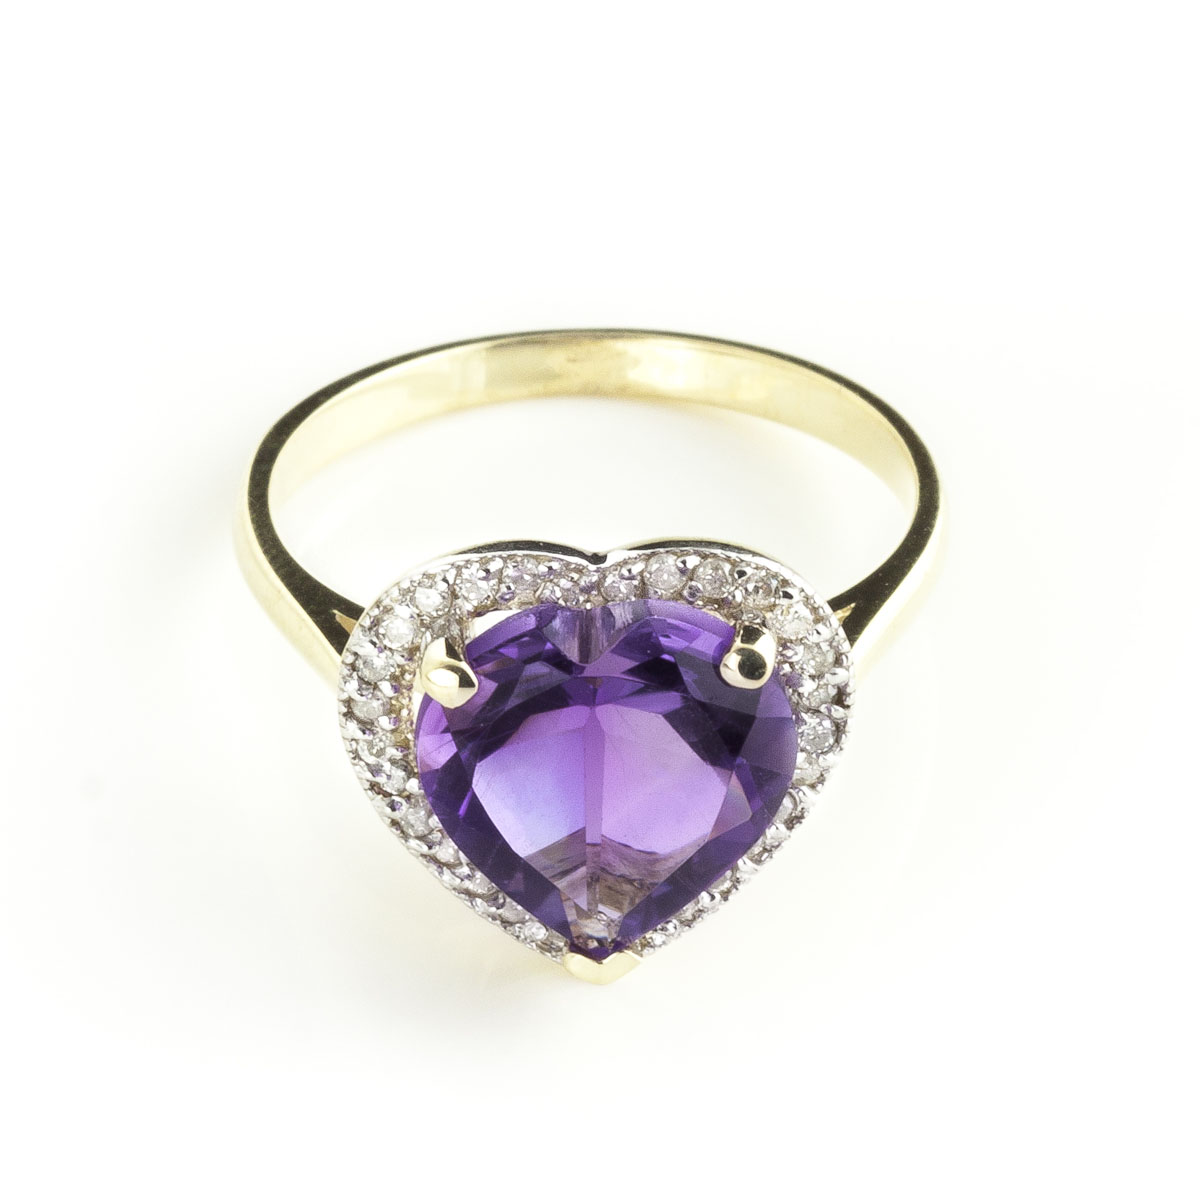 Amethyst Halo Ring 3.24 ctw in 18ct Gold